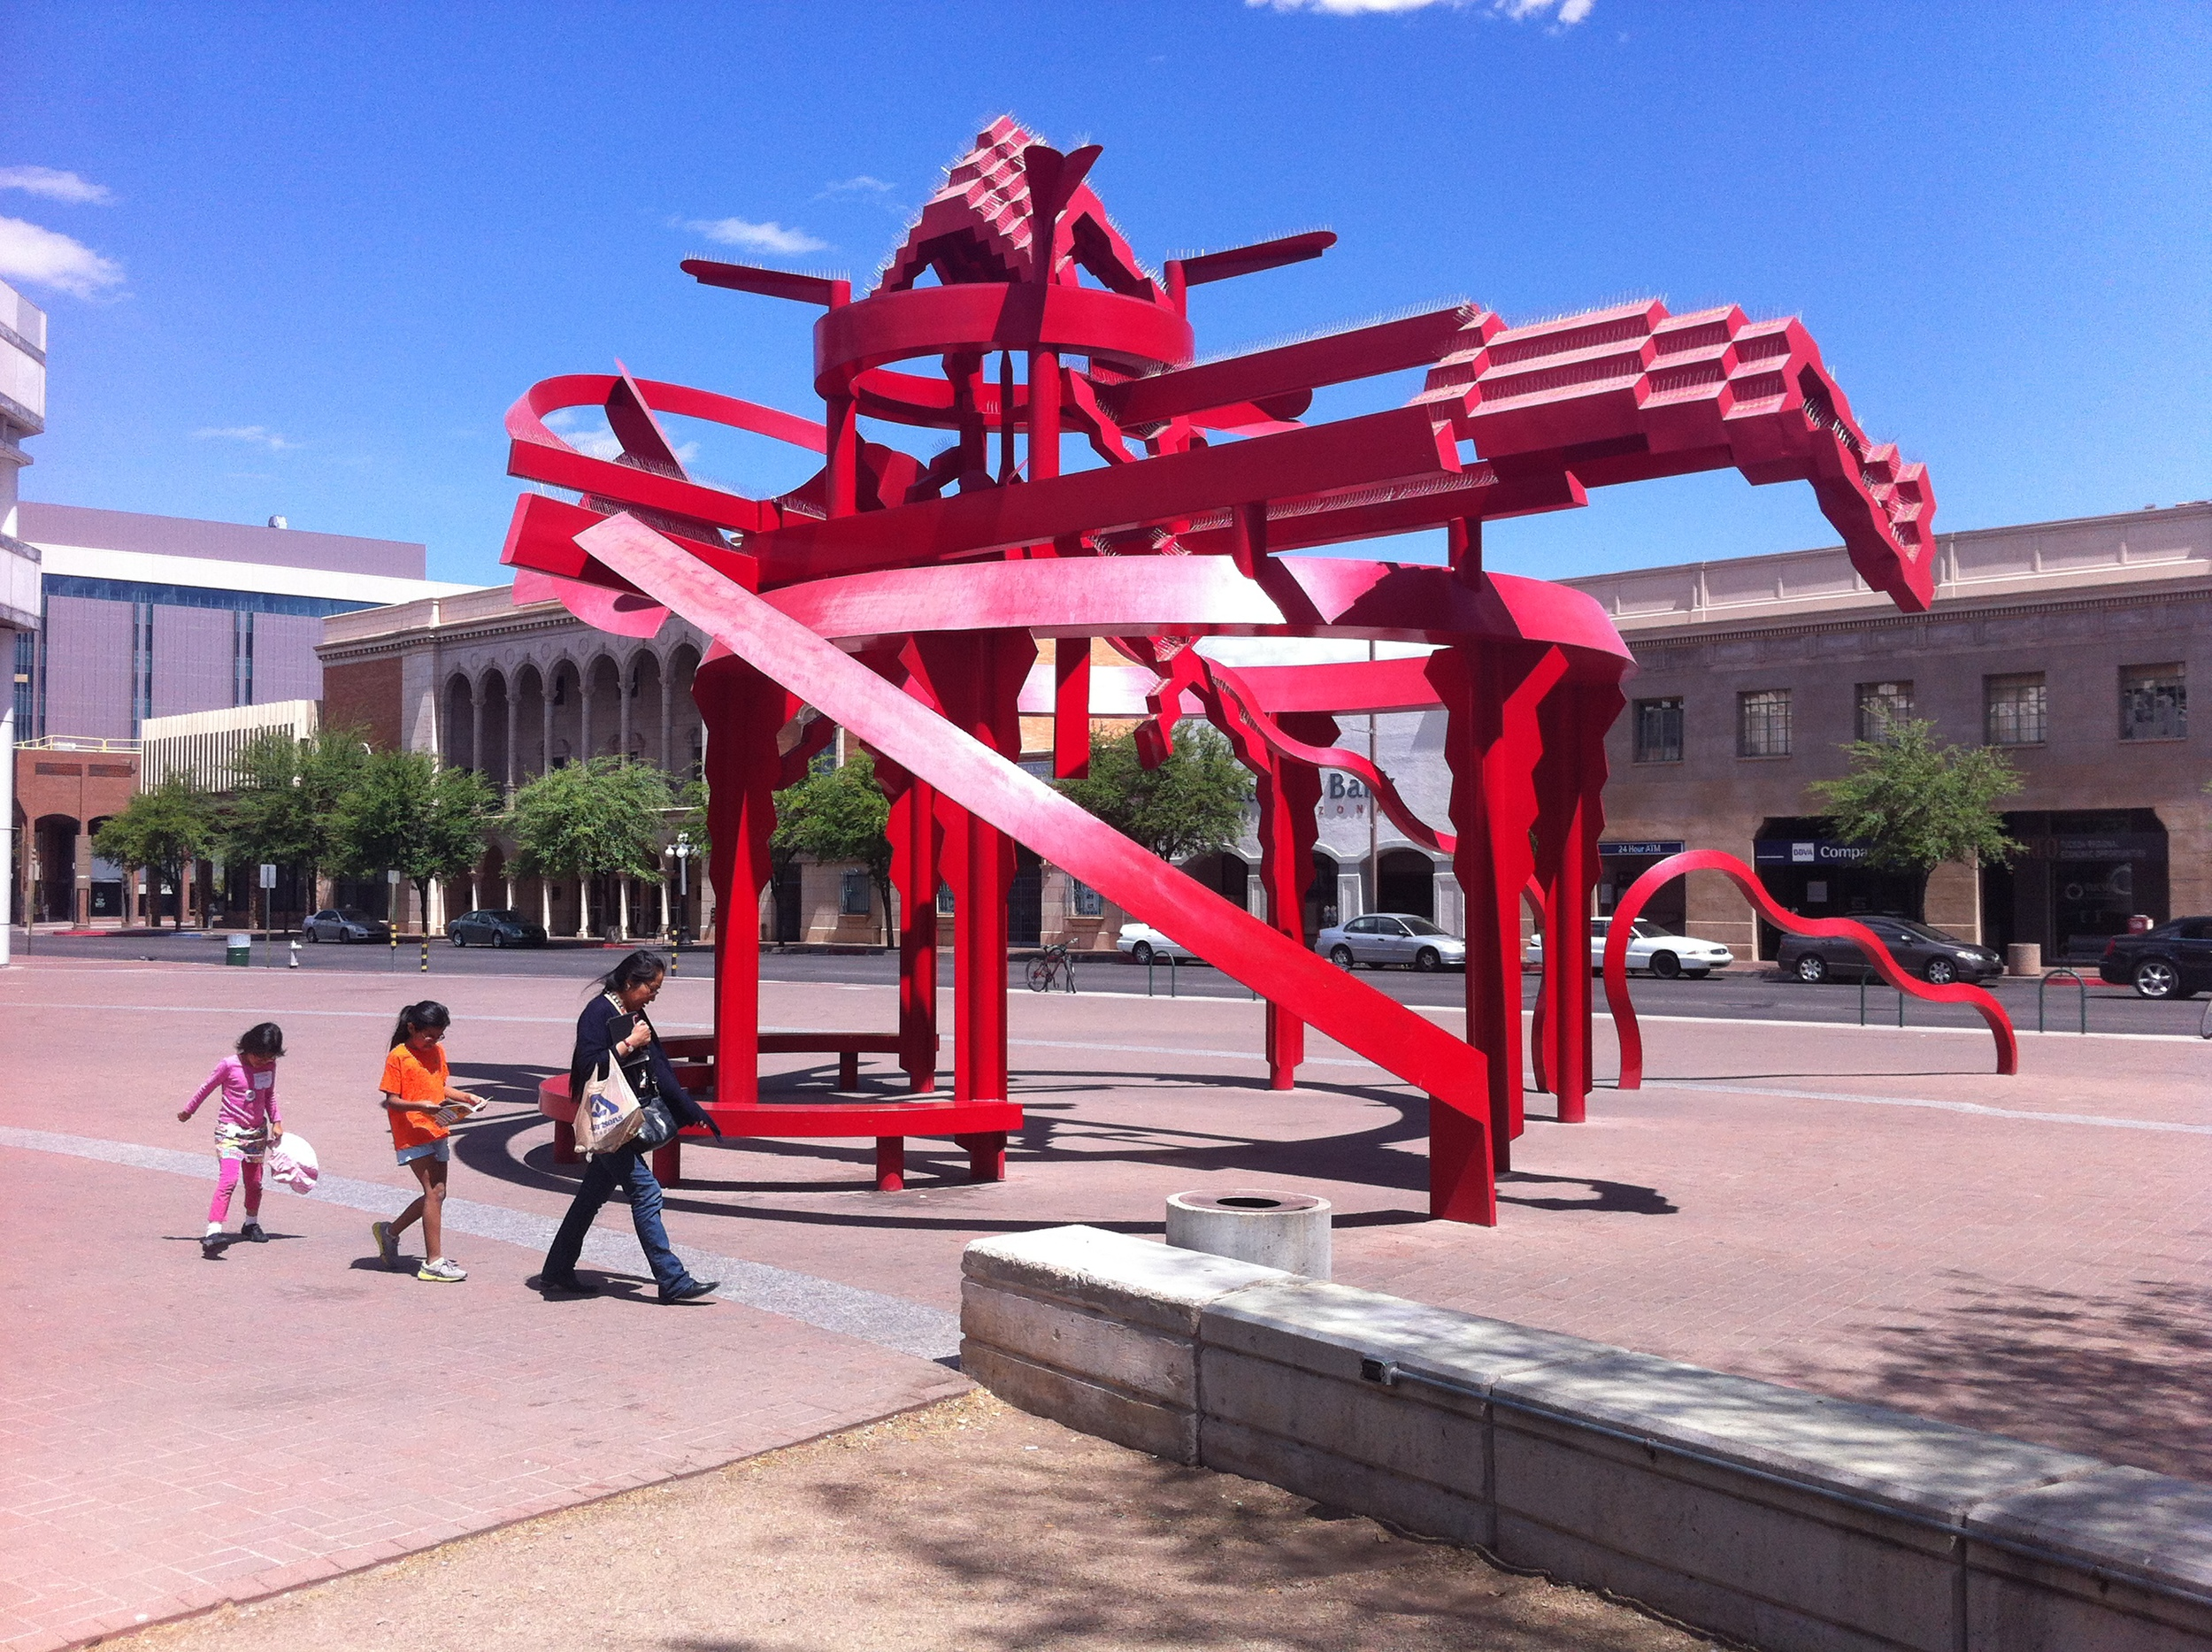 This piece sits outside the Tucson Public Library in their Cultural District.  I couldn't find information on the artist or the title.  We passed this piece several times and never saw anyone stopping to look at it.